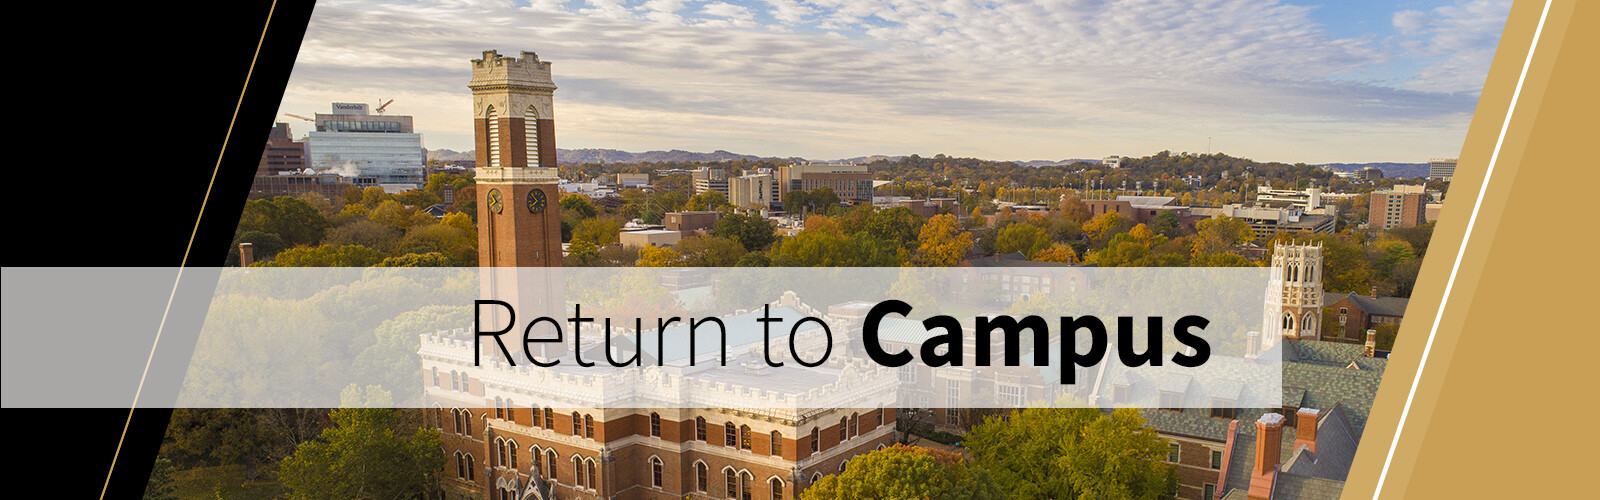 Learn more about the Return to Campus plan at Vanderbilt University.